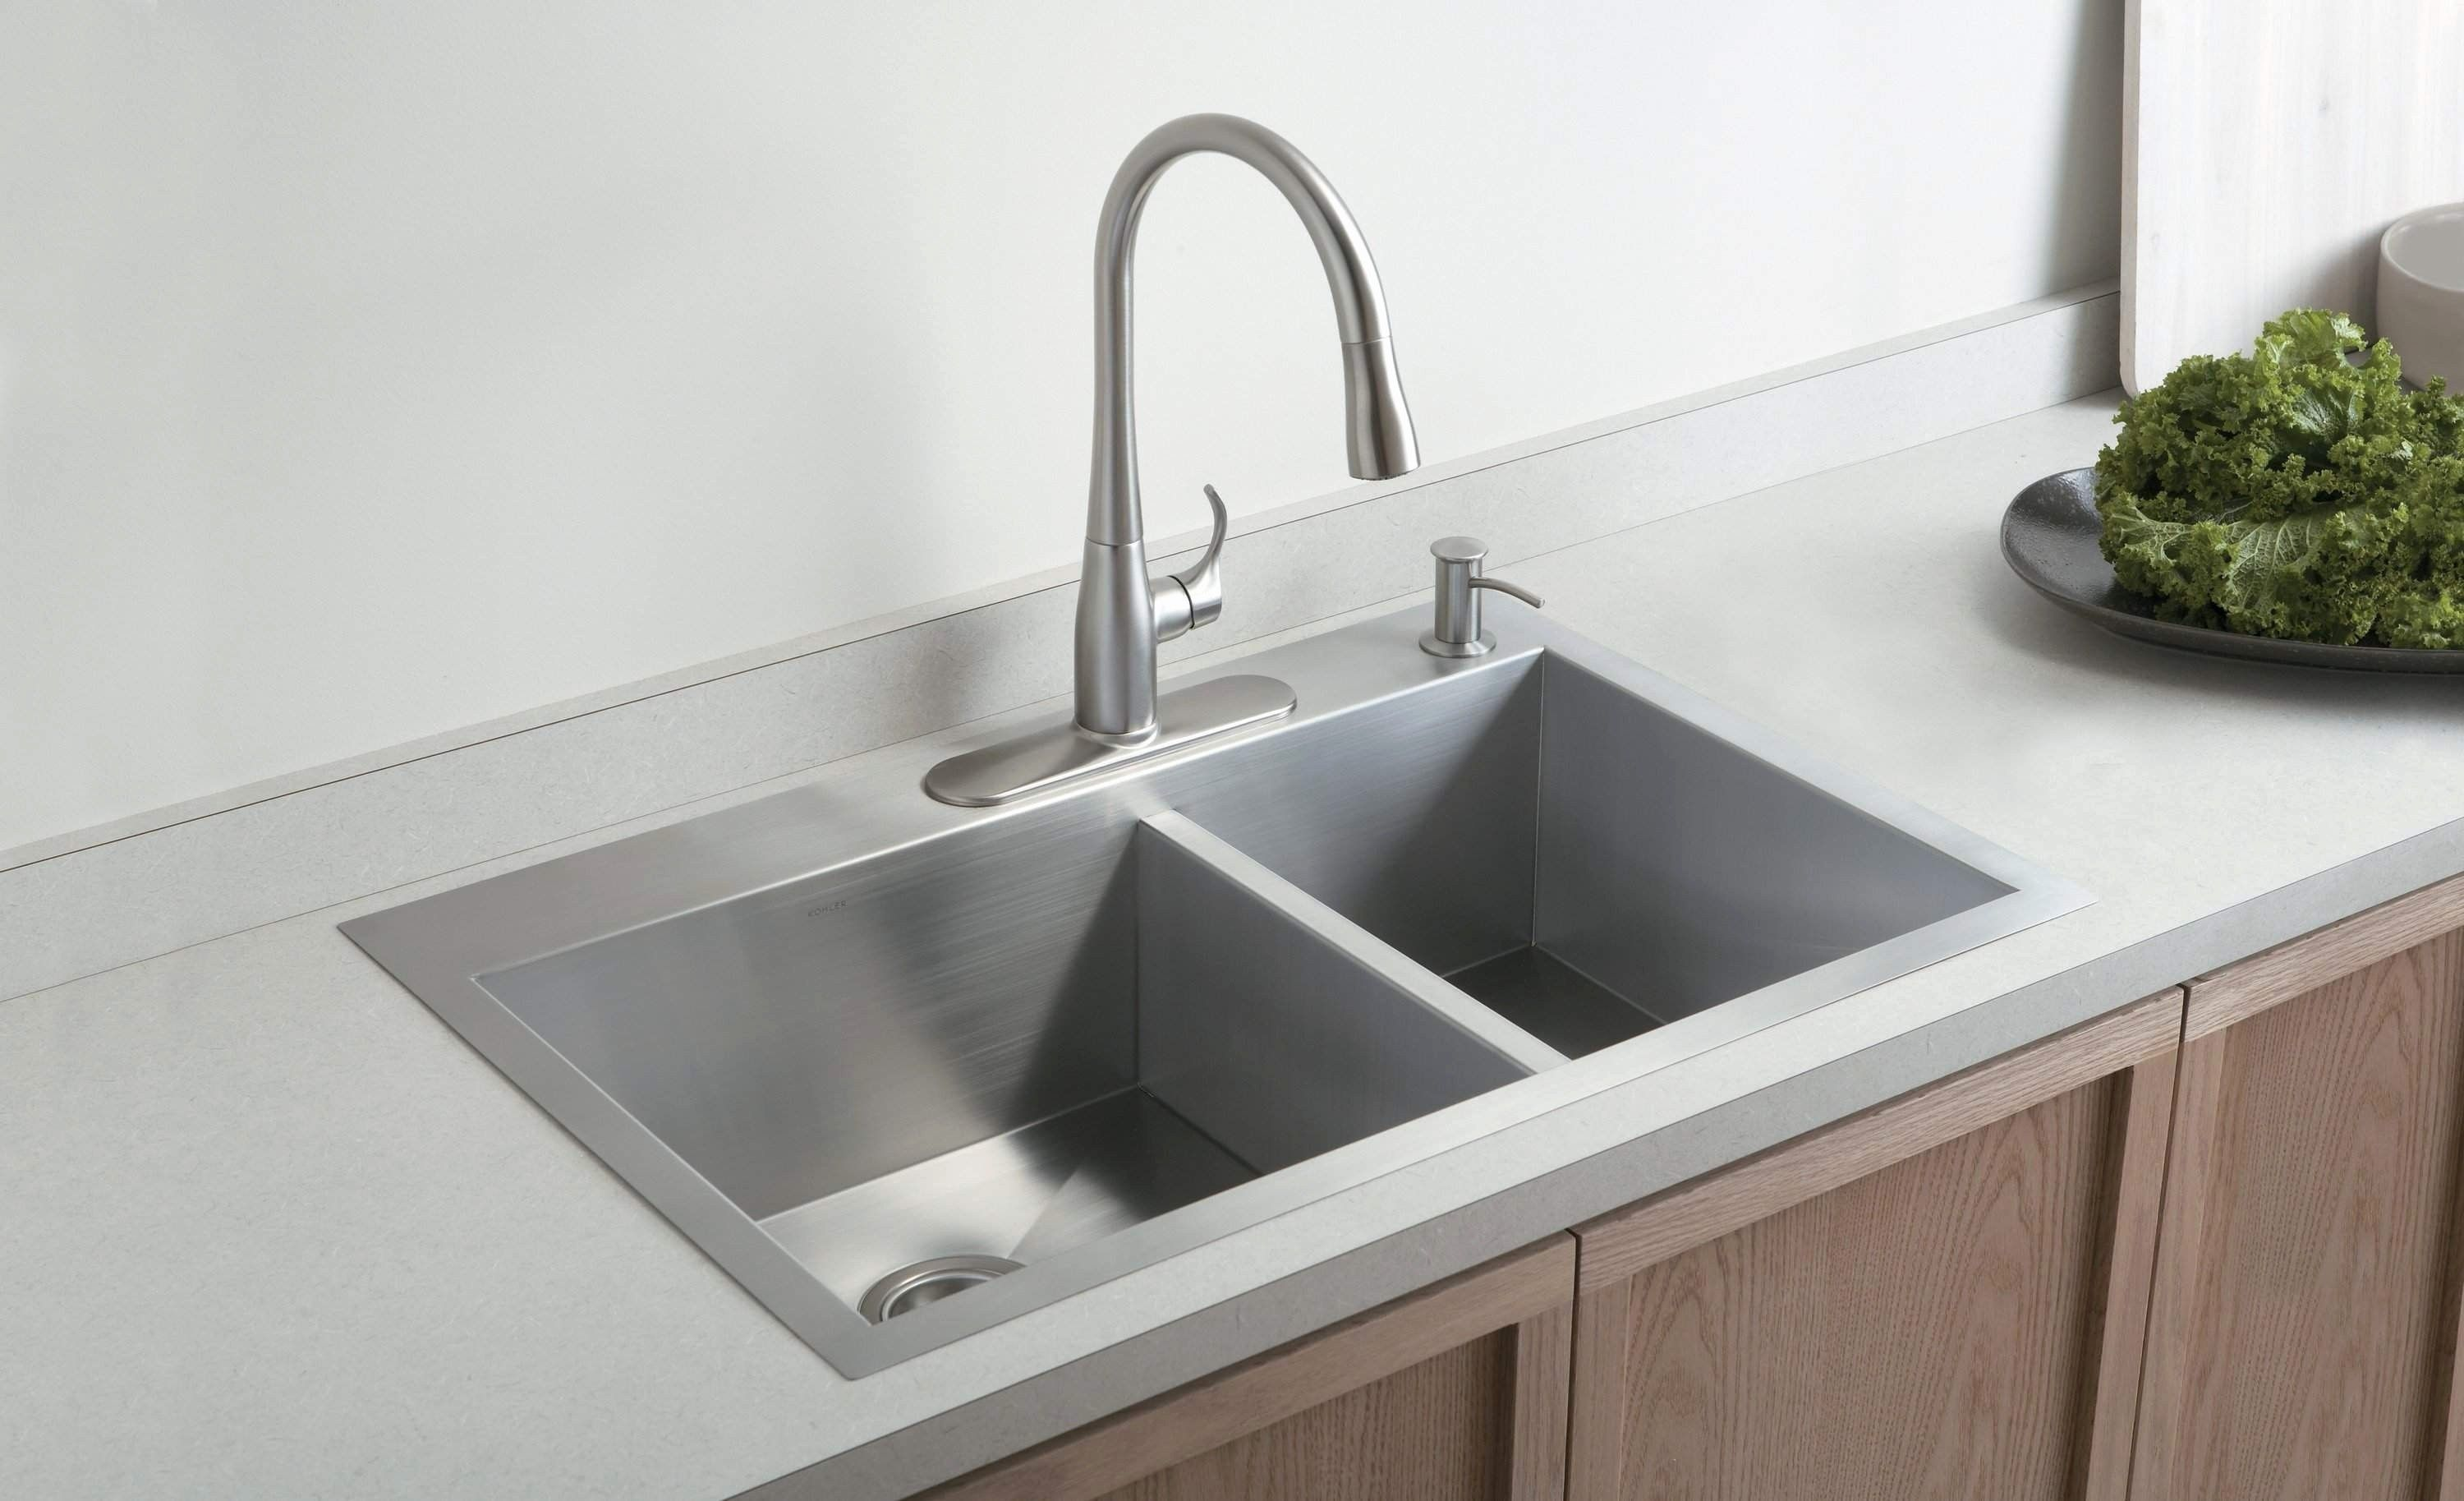 19x33 Kitchen Sink Hotels With Kitchens In Portland Oregon Pin Oleh Home Furniture Di One Pinterest Best Of Check More At Https Homefurnitureone Com